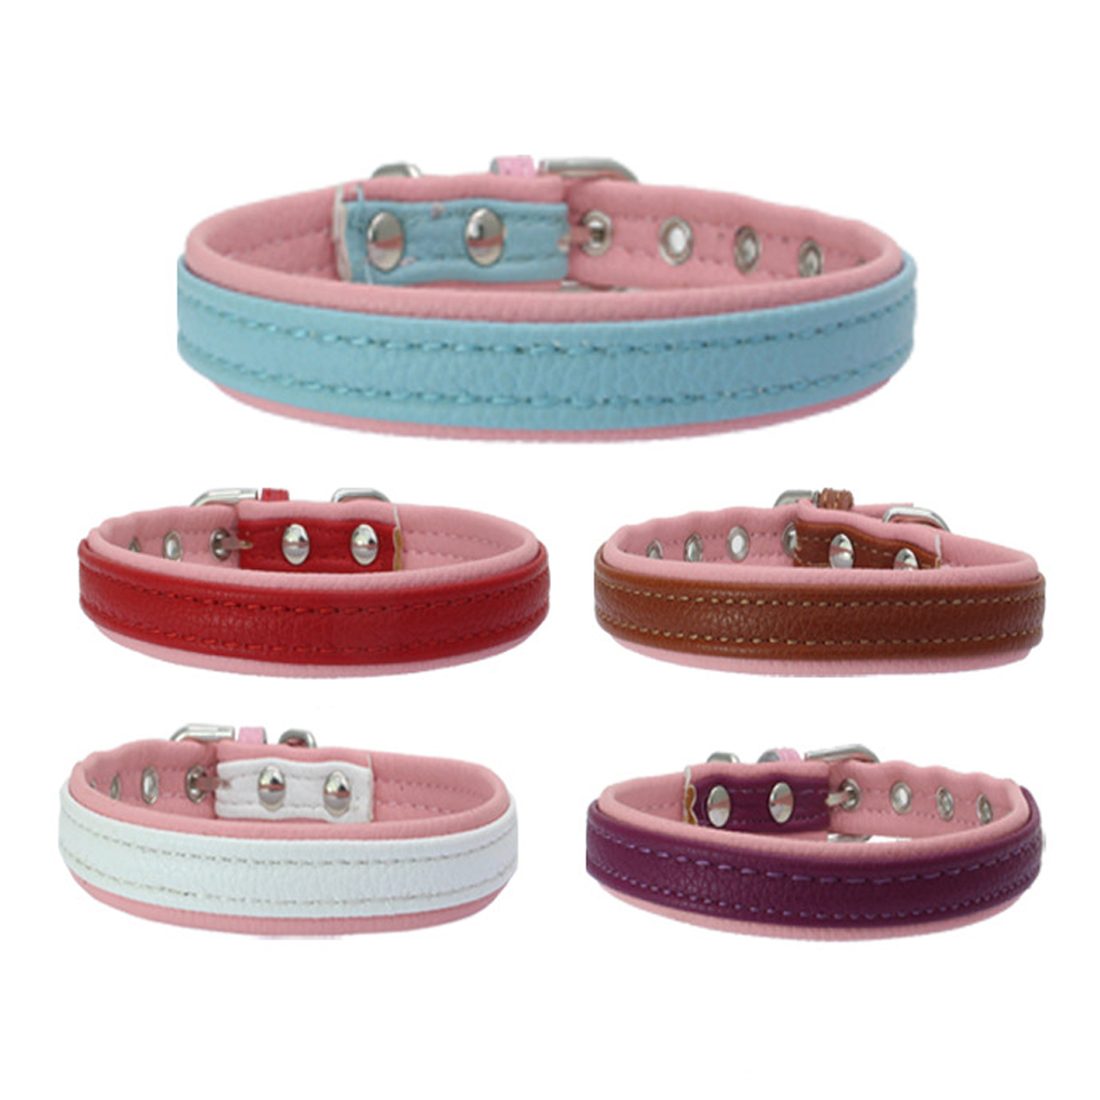 New Brand Cool Rivets Studded Genuine Leather Pet Dog Collars For Dogs With Four Color Boxer Bulldog Pitbull XS S M L